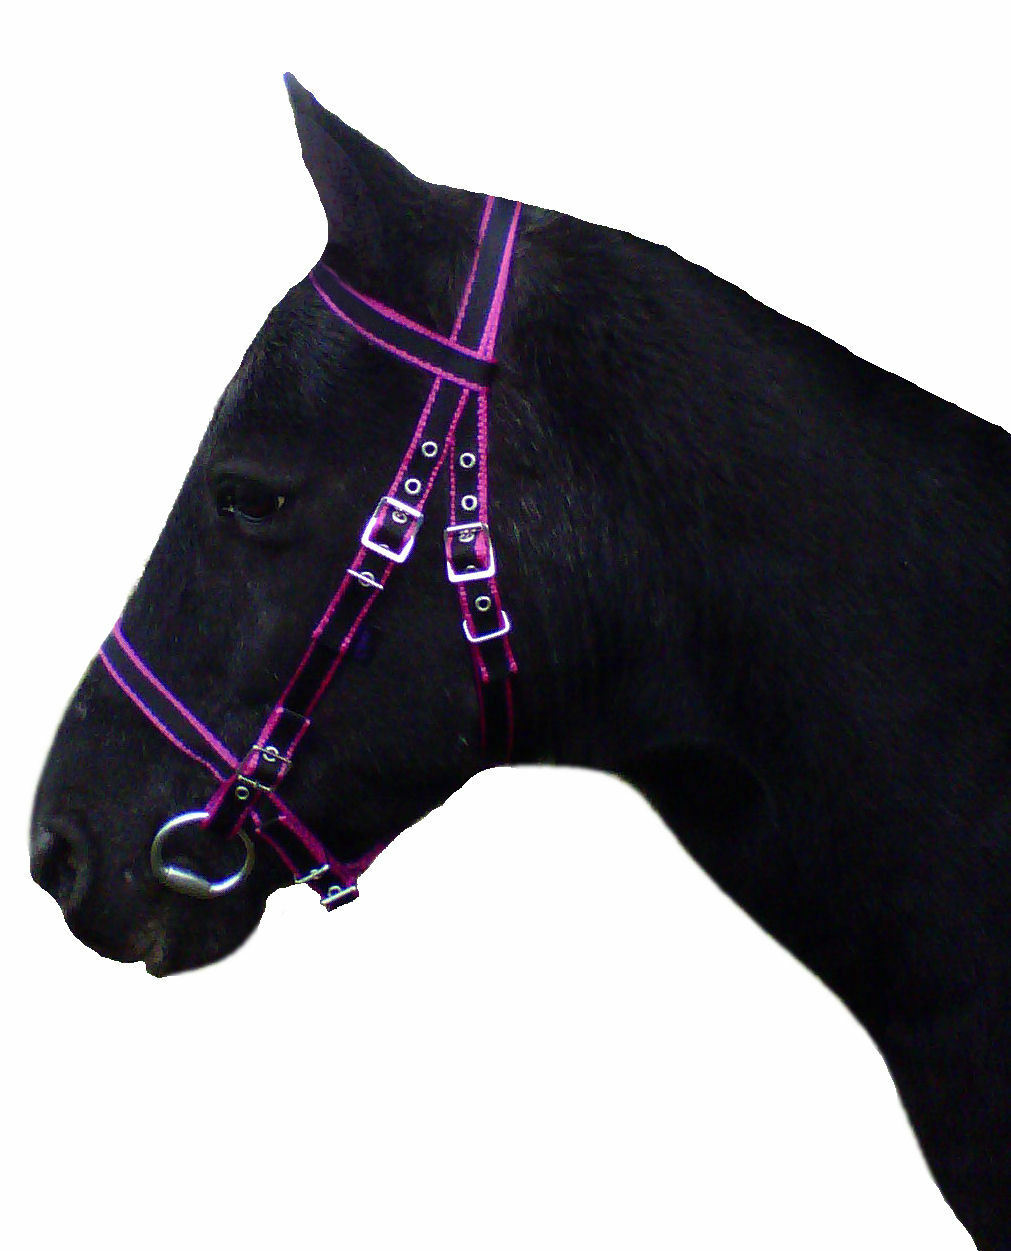 Official Libby's DARTMOOR Bridle in Miniature, Small Pony, Pony, Cob, Full